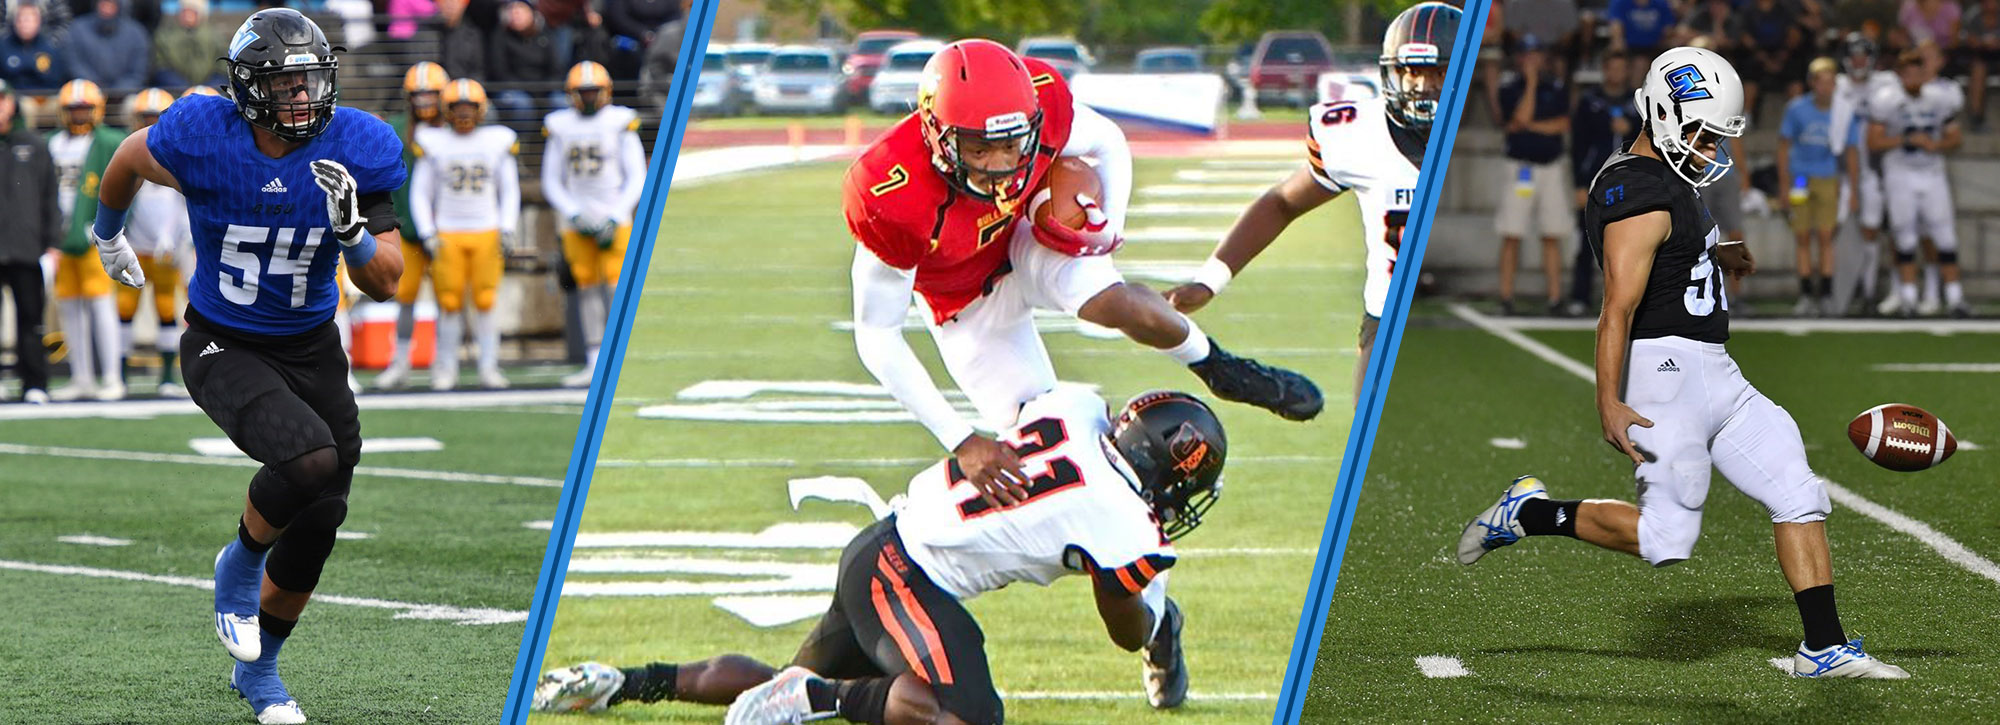 FSU's Campbell, GVSU's Carroll & Cribley Capture GLIAC Football Player of the Week Honors